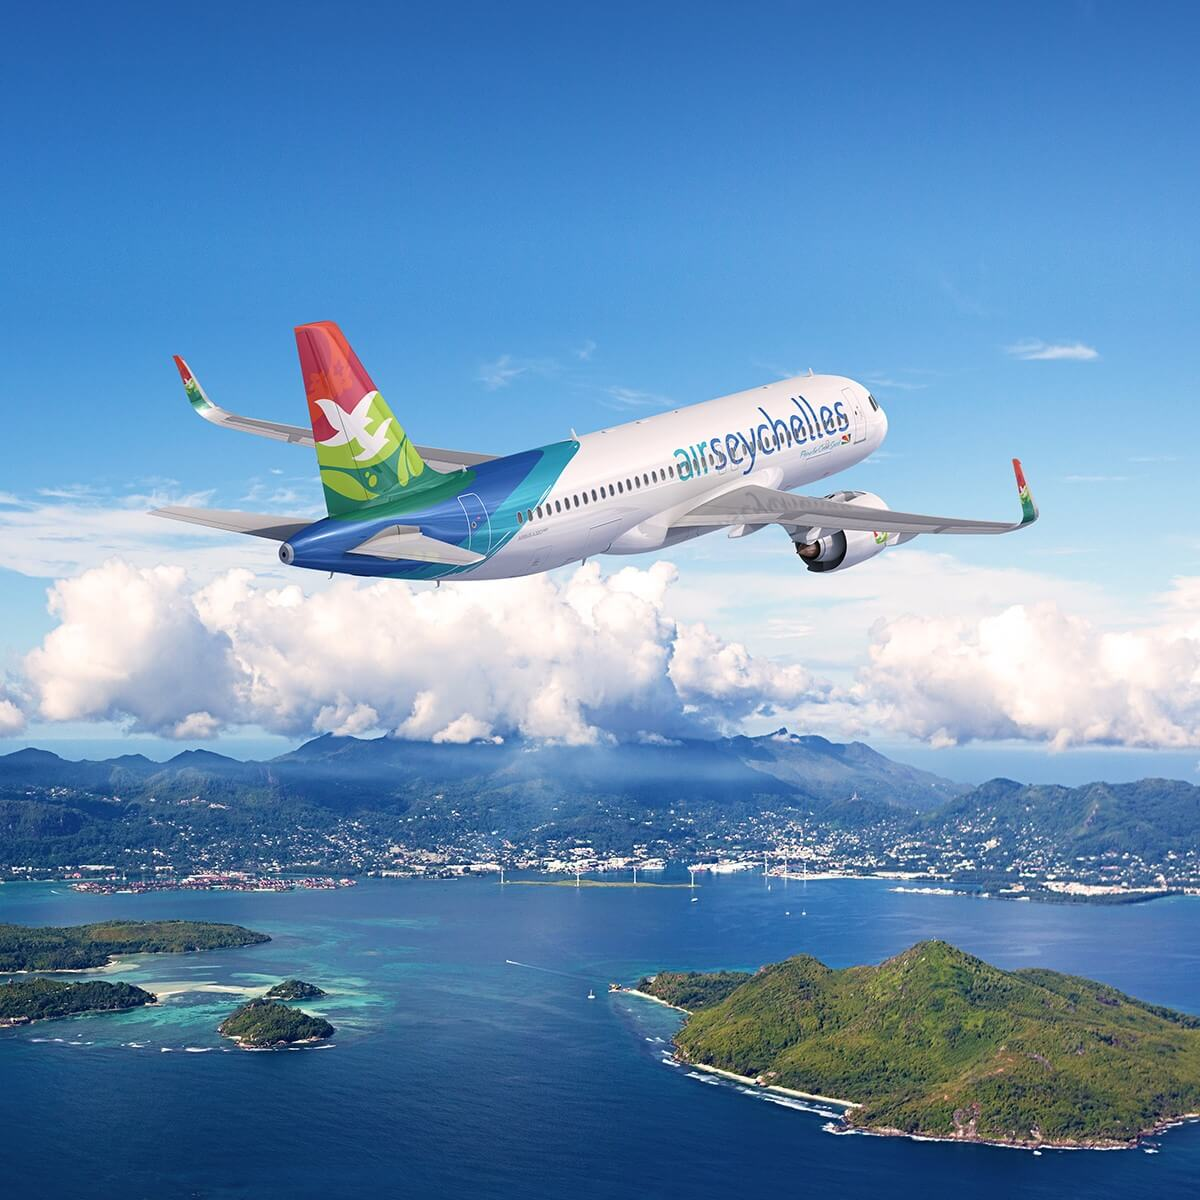 Air Seychelles confirms delivery of 2nd A320neo aircraft